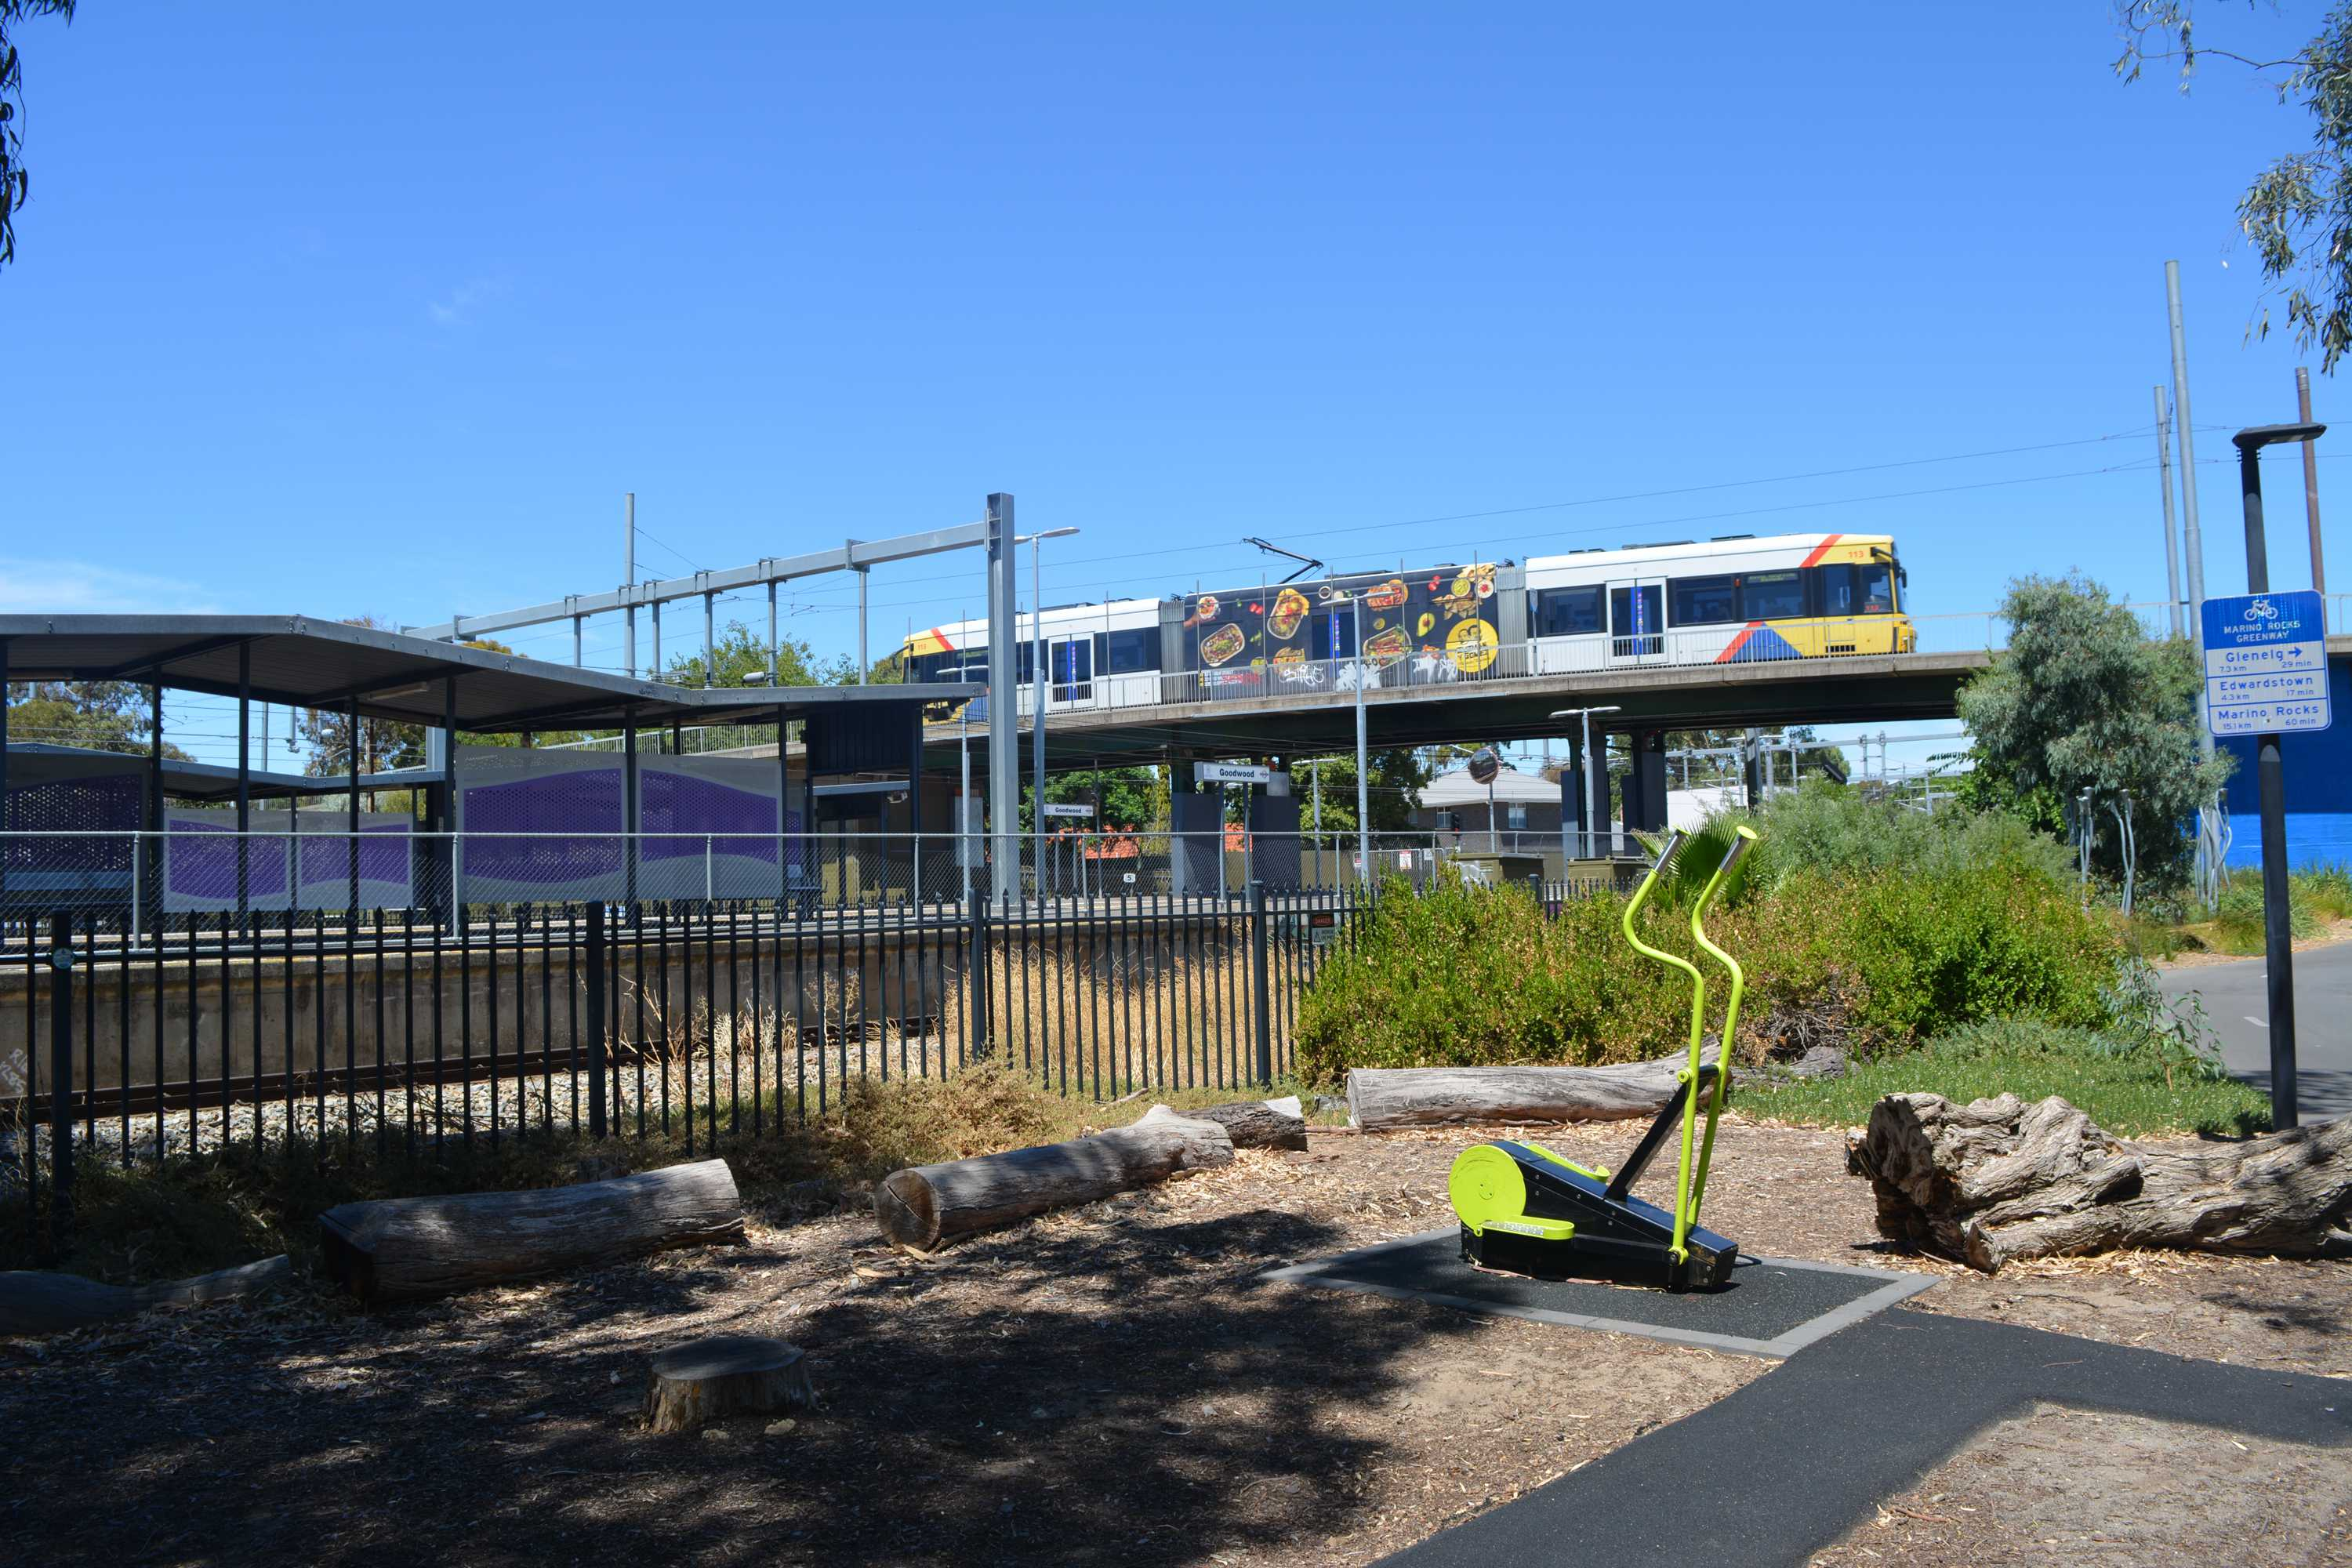 Tram overpass and train station from Forestville